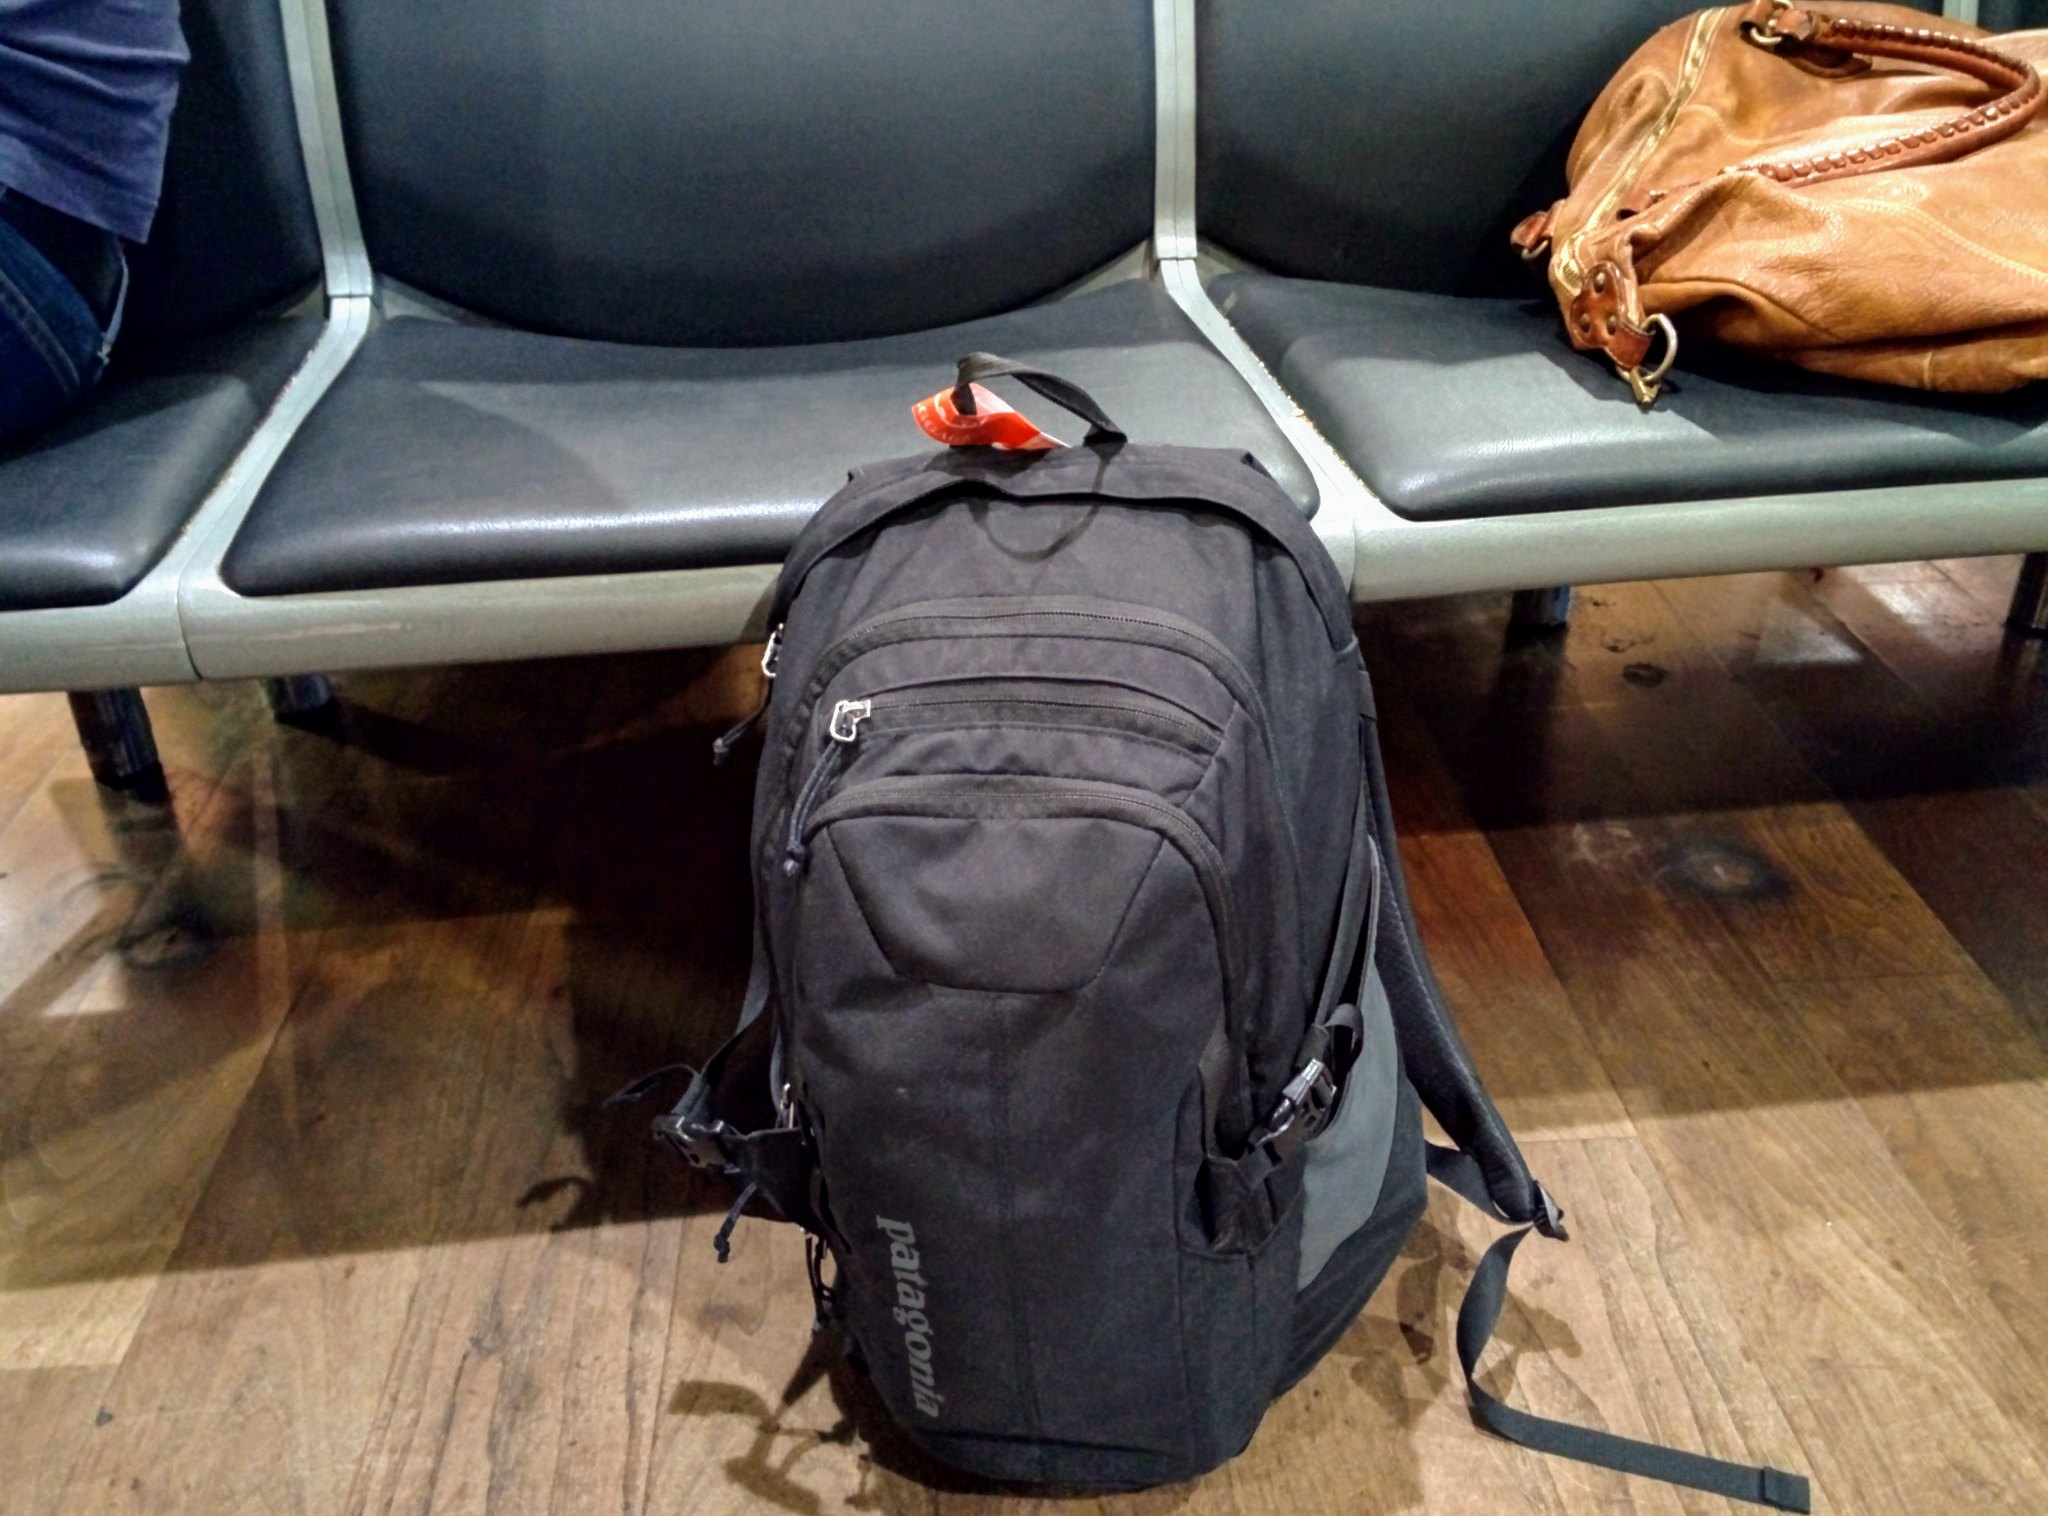 My bag packed for 5+ months of travel